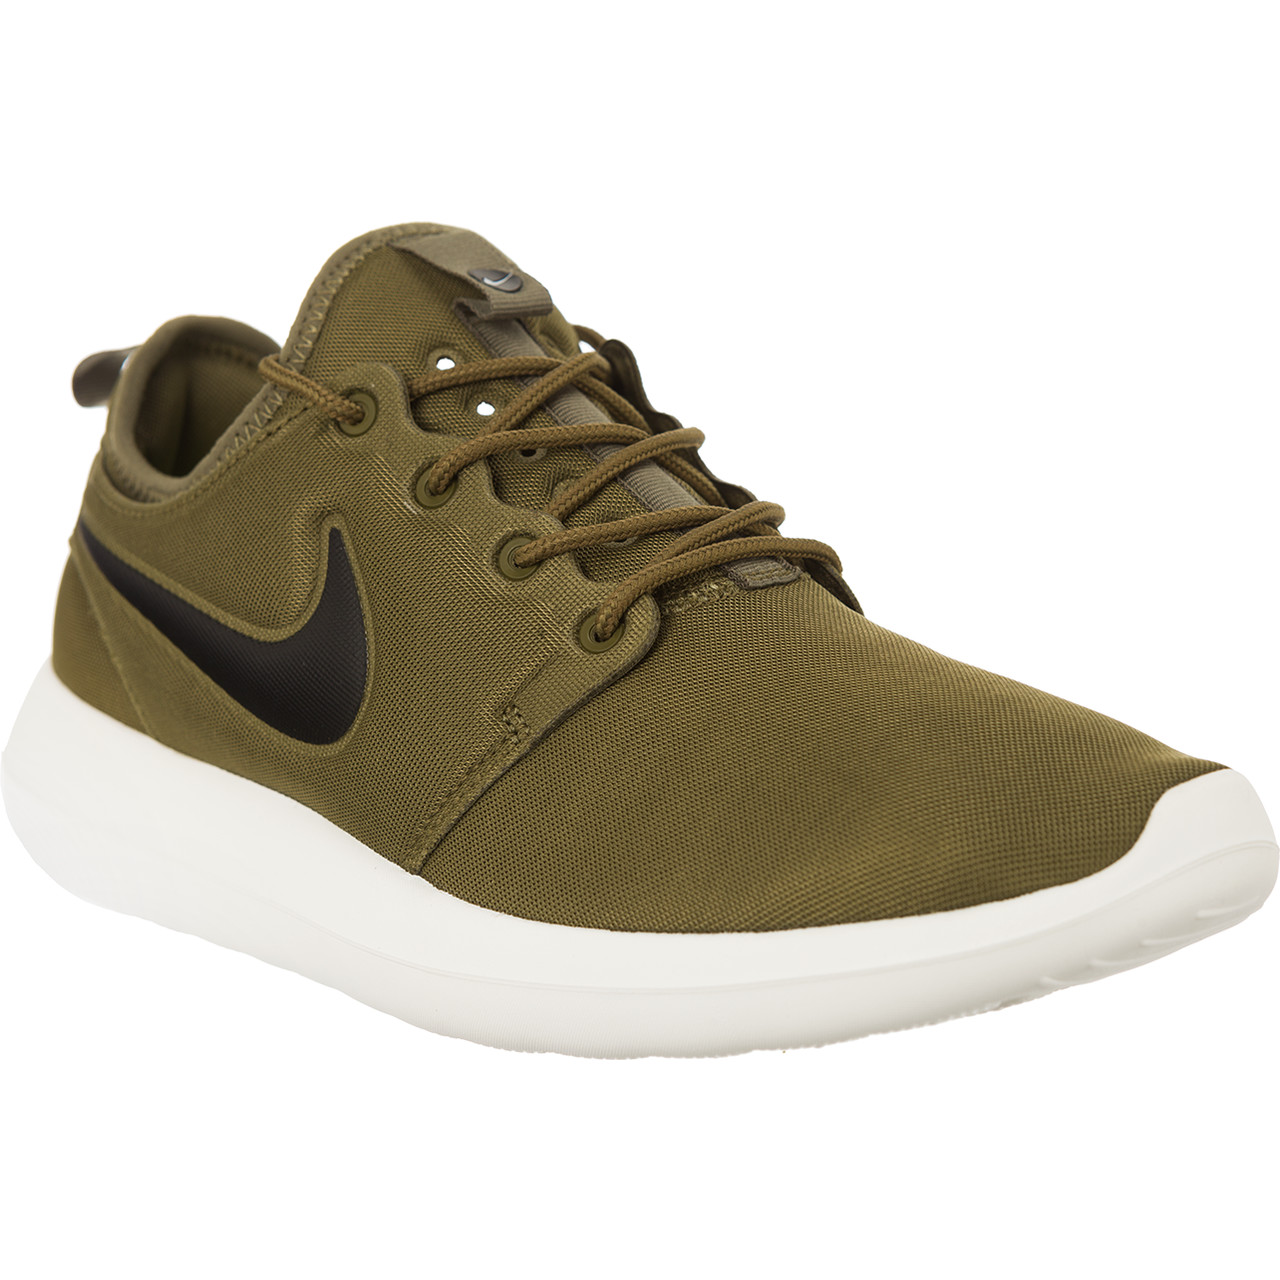 new concept 1a91f bfa98 ... Buty Nike brsmallRoshe Two ...